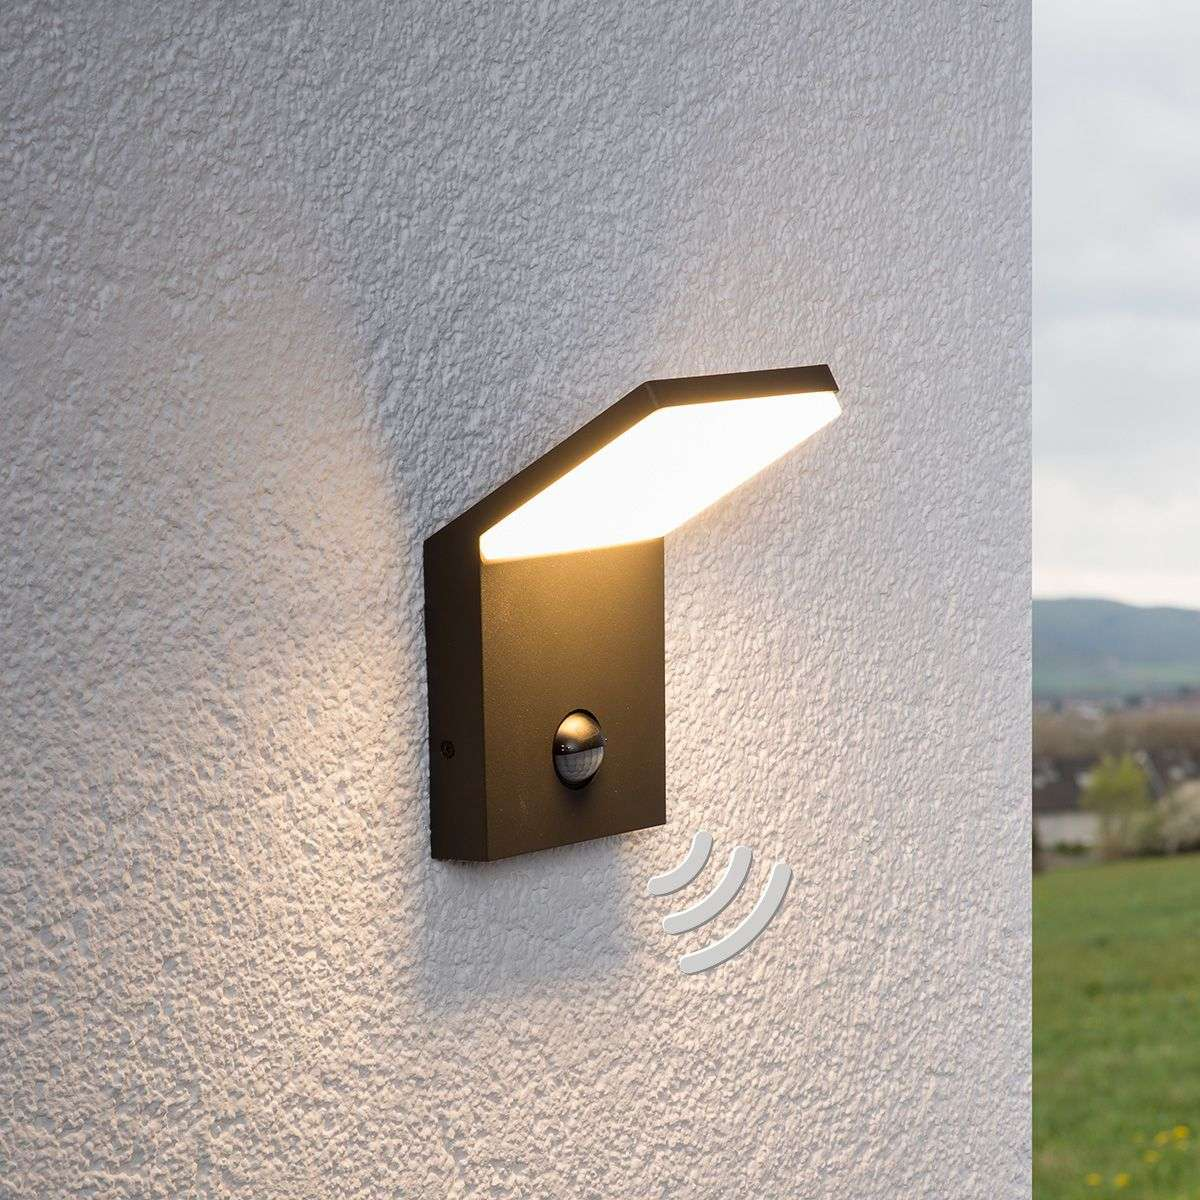 LED outdoor wall light Nevio with motion detector-9619040-31 & LED outdoor wall light Nevio with motion detector | Lights.ie